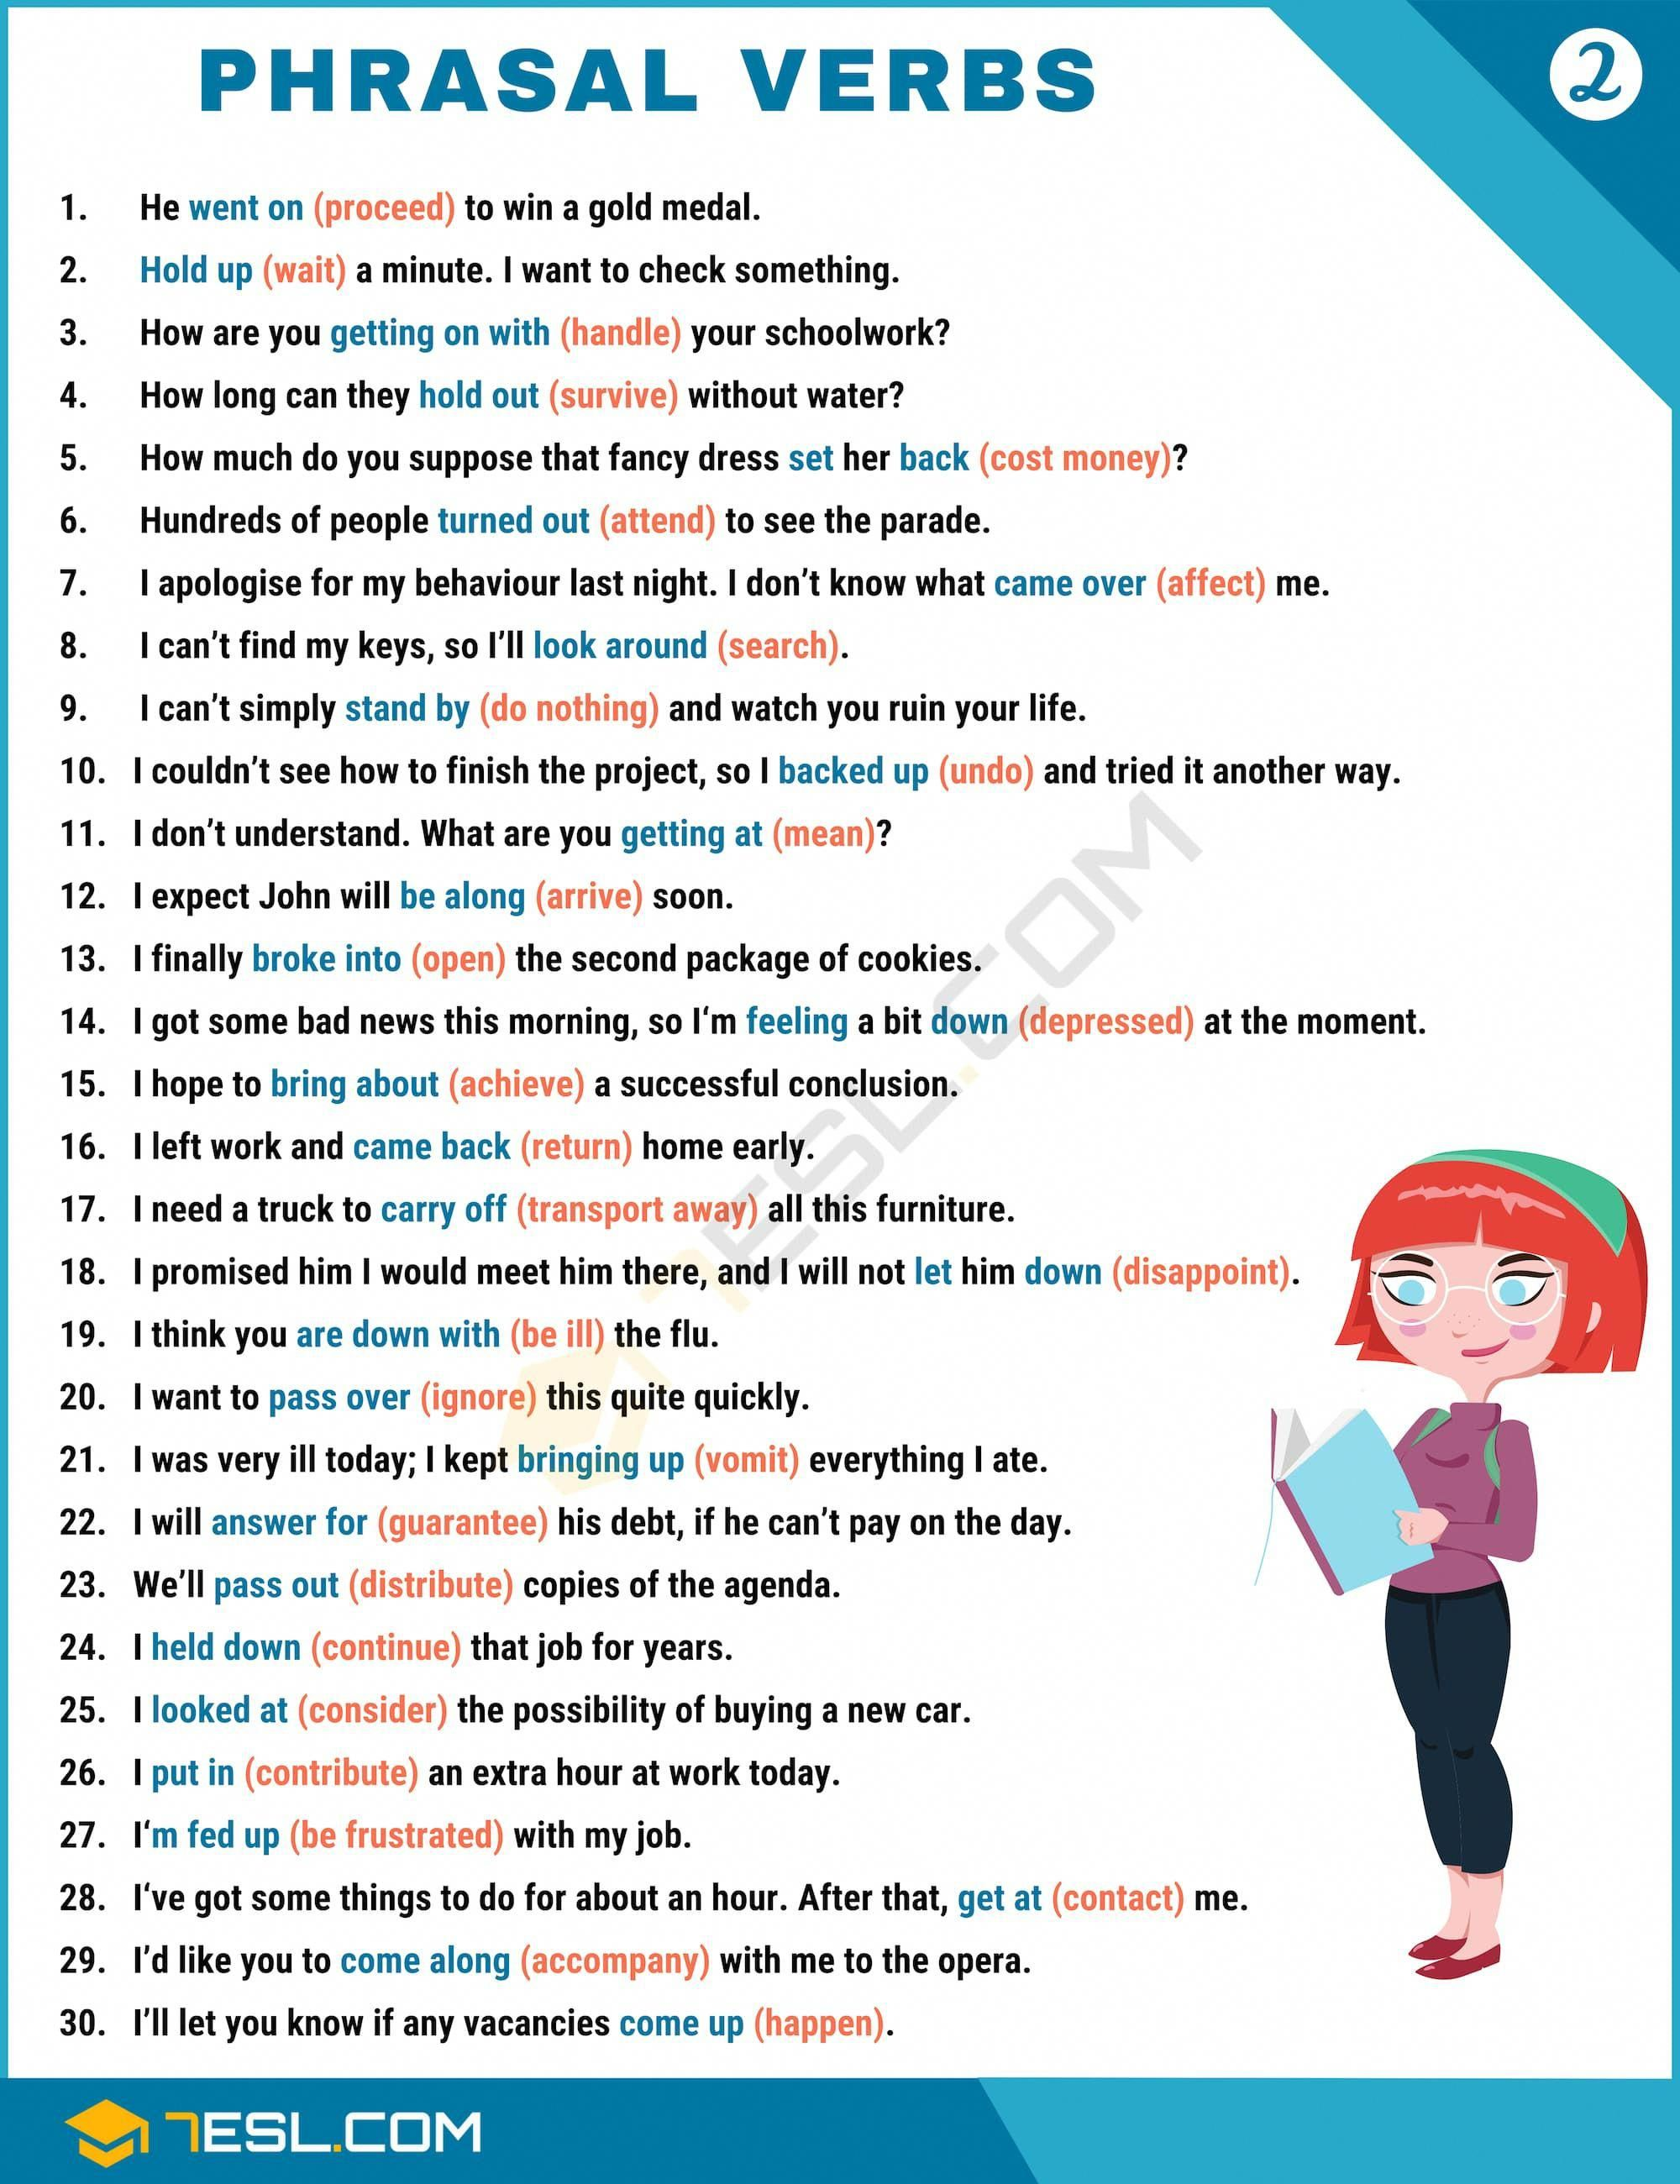 2000 Phrasal Verbs List From A Z To Sound Like A Native 7esl Verbs List Learn English Vocabulary English Language Classes [ 2600 x 2000 Pixel ]